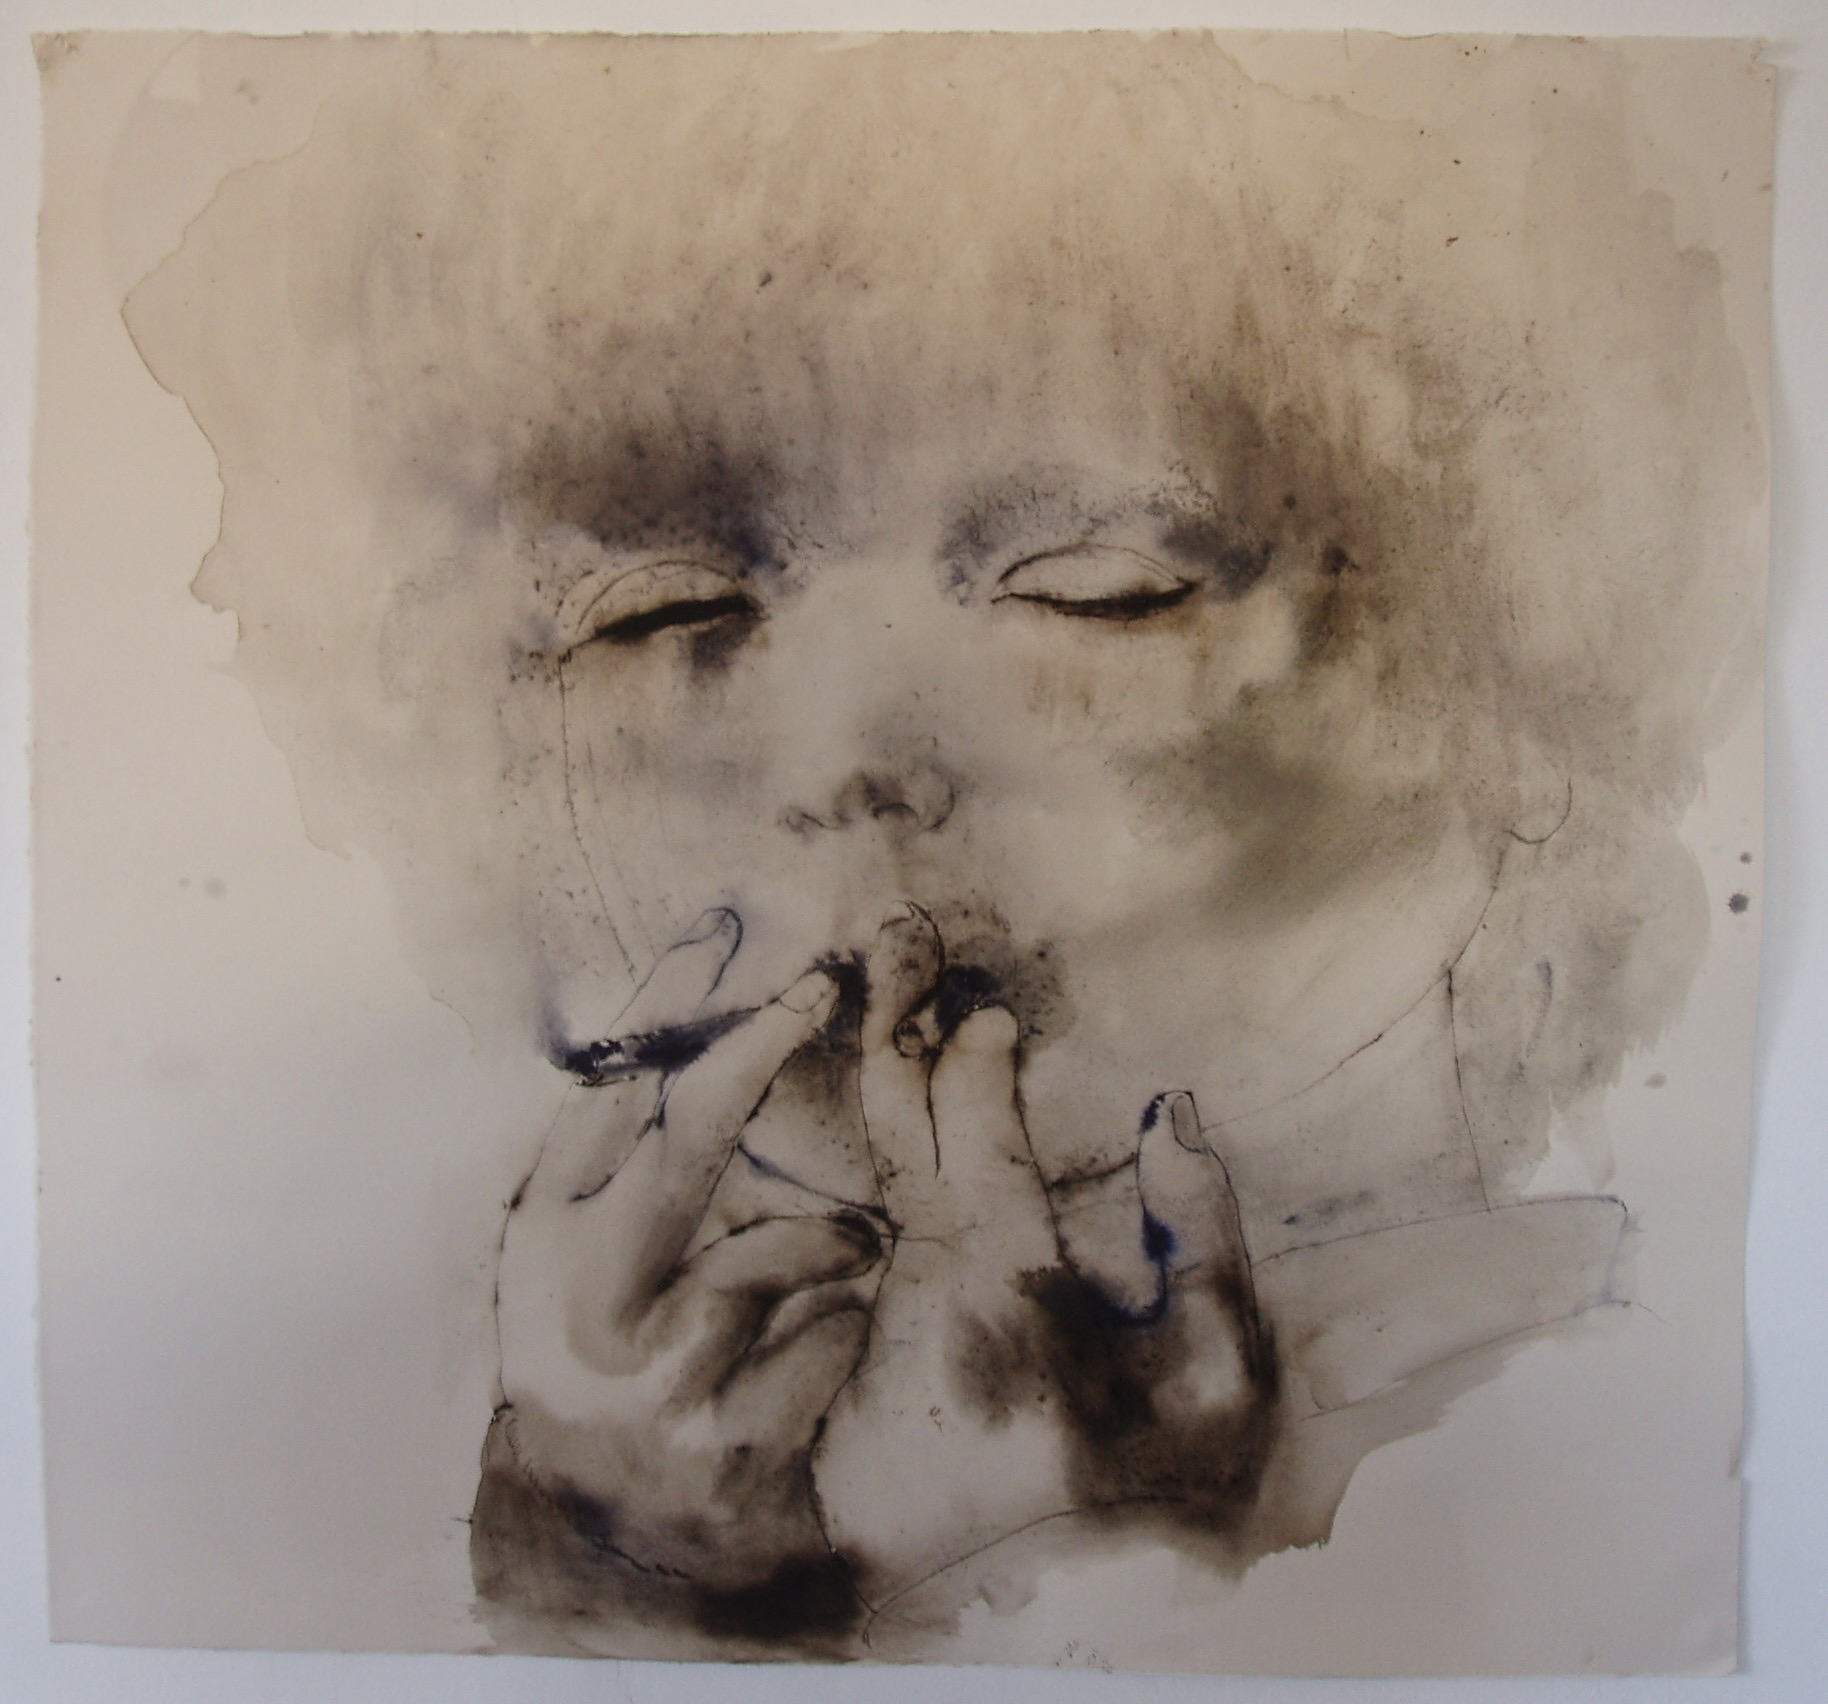 'Smoke' 68 x 66cm Ink and watercolour on paper Private Collection